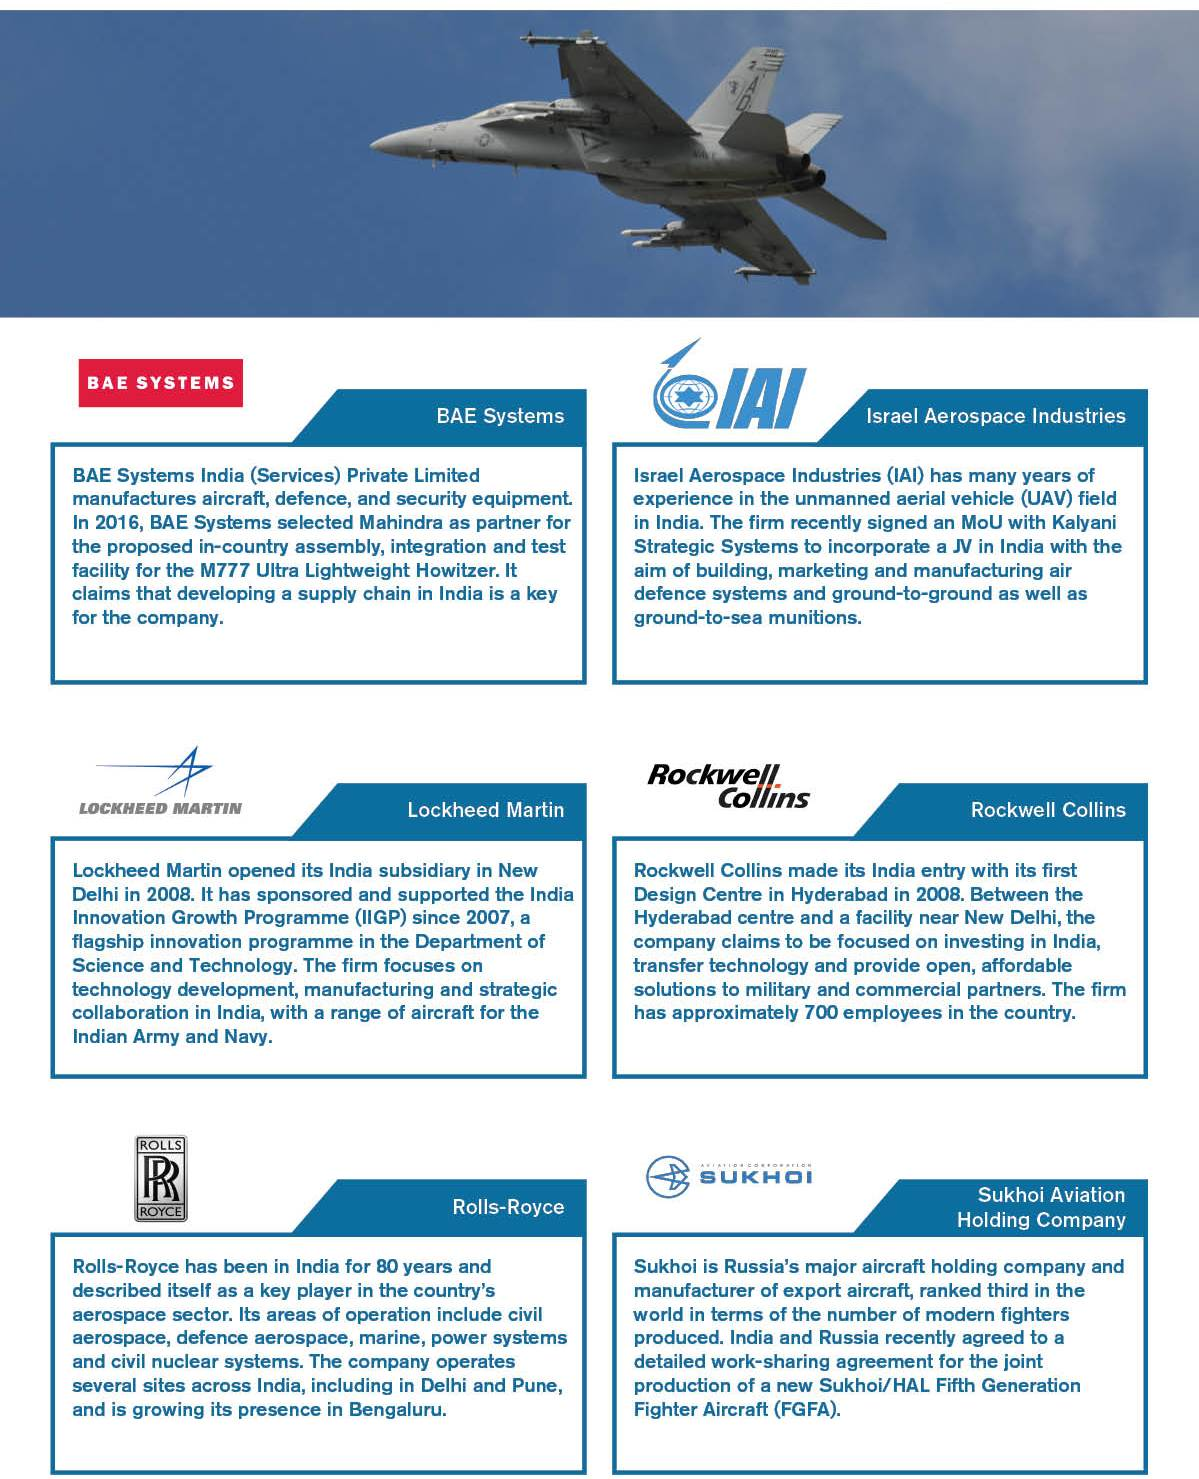 International players in Indian Aerospace